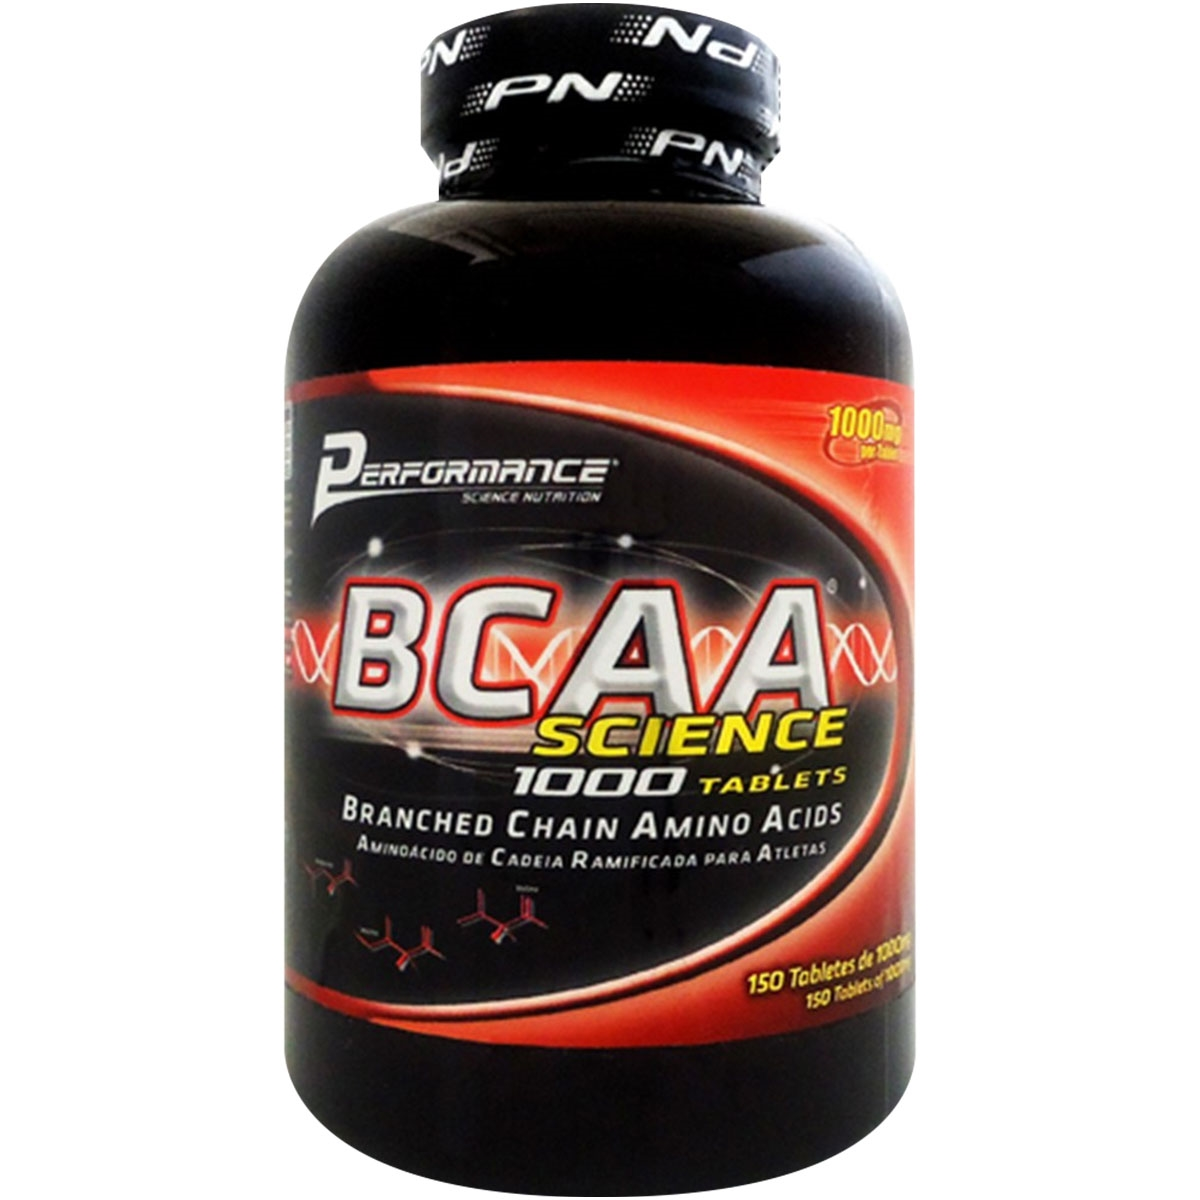 Bcaa science 1000 150 tabletes performance mat ria for 1000 150